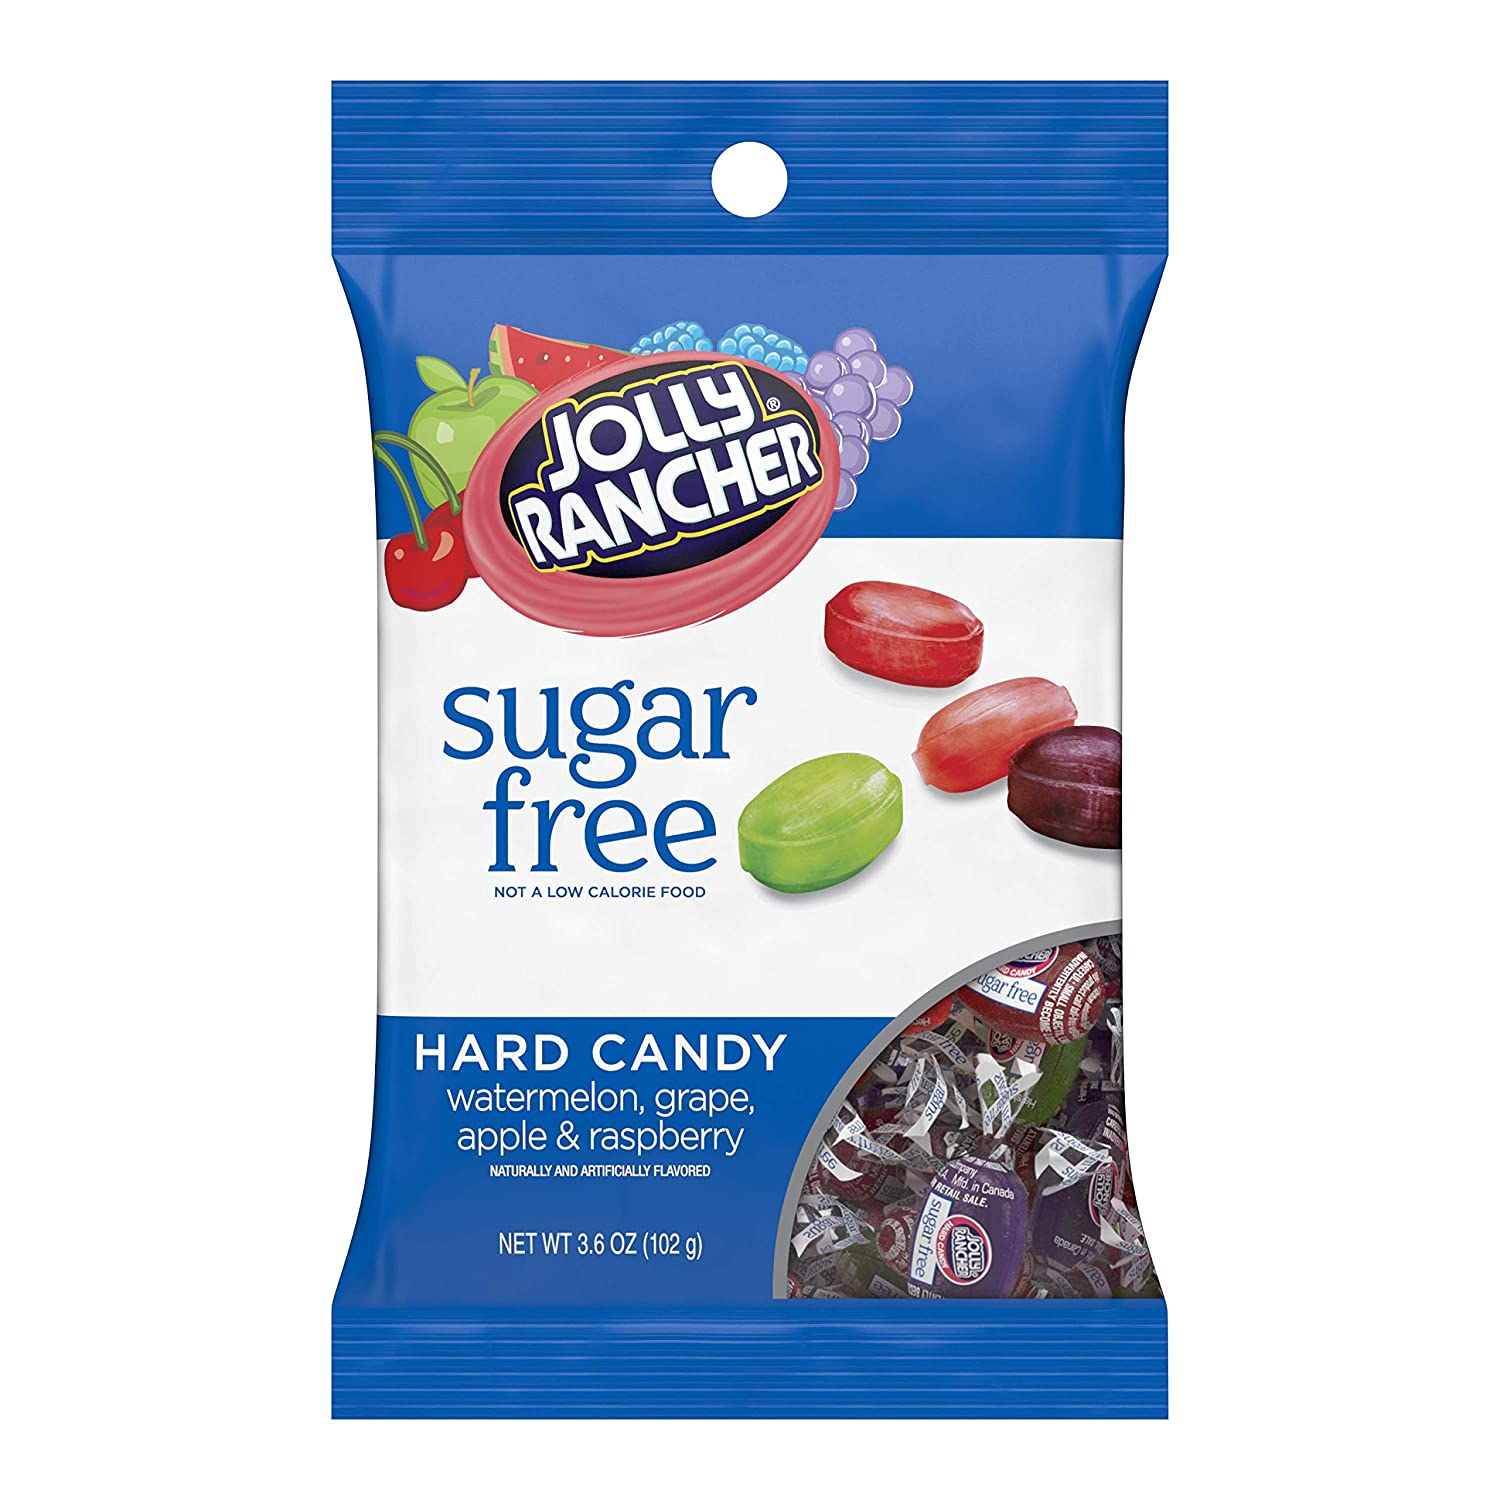 JOLLY RANCHER Hard Candy, Assorted Flavors, Sugar-Free, 3.6 Ounce Bag